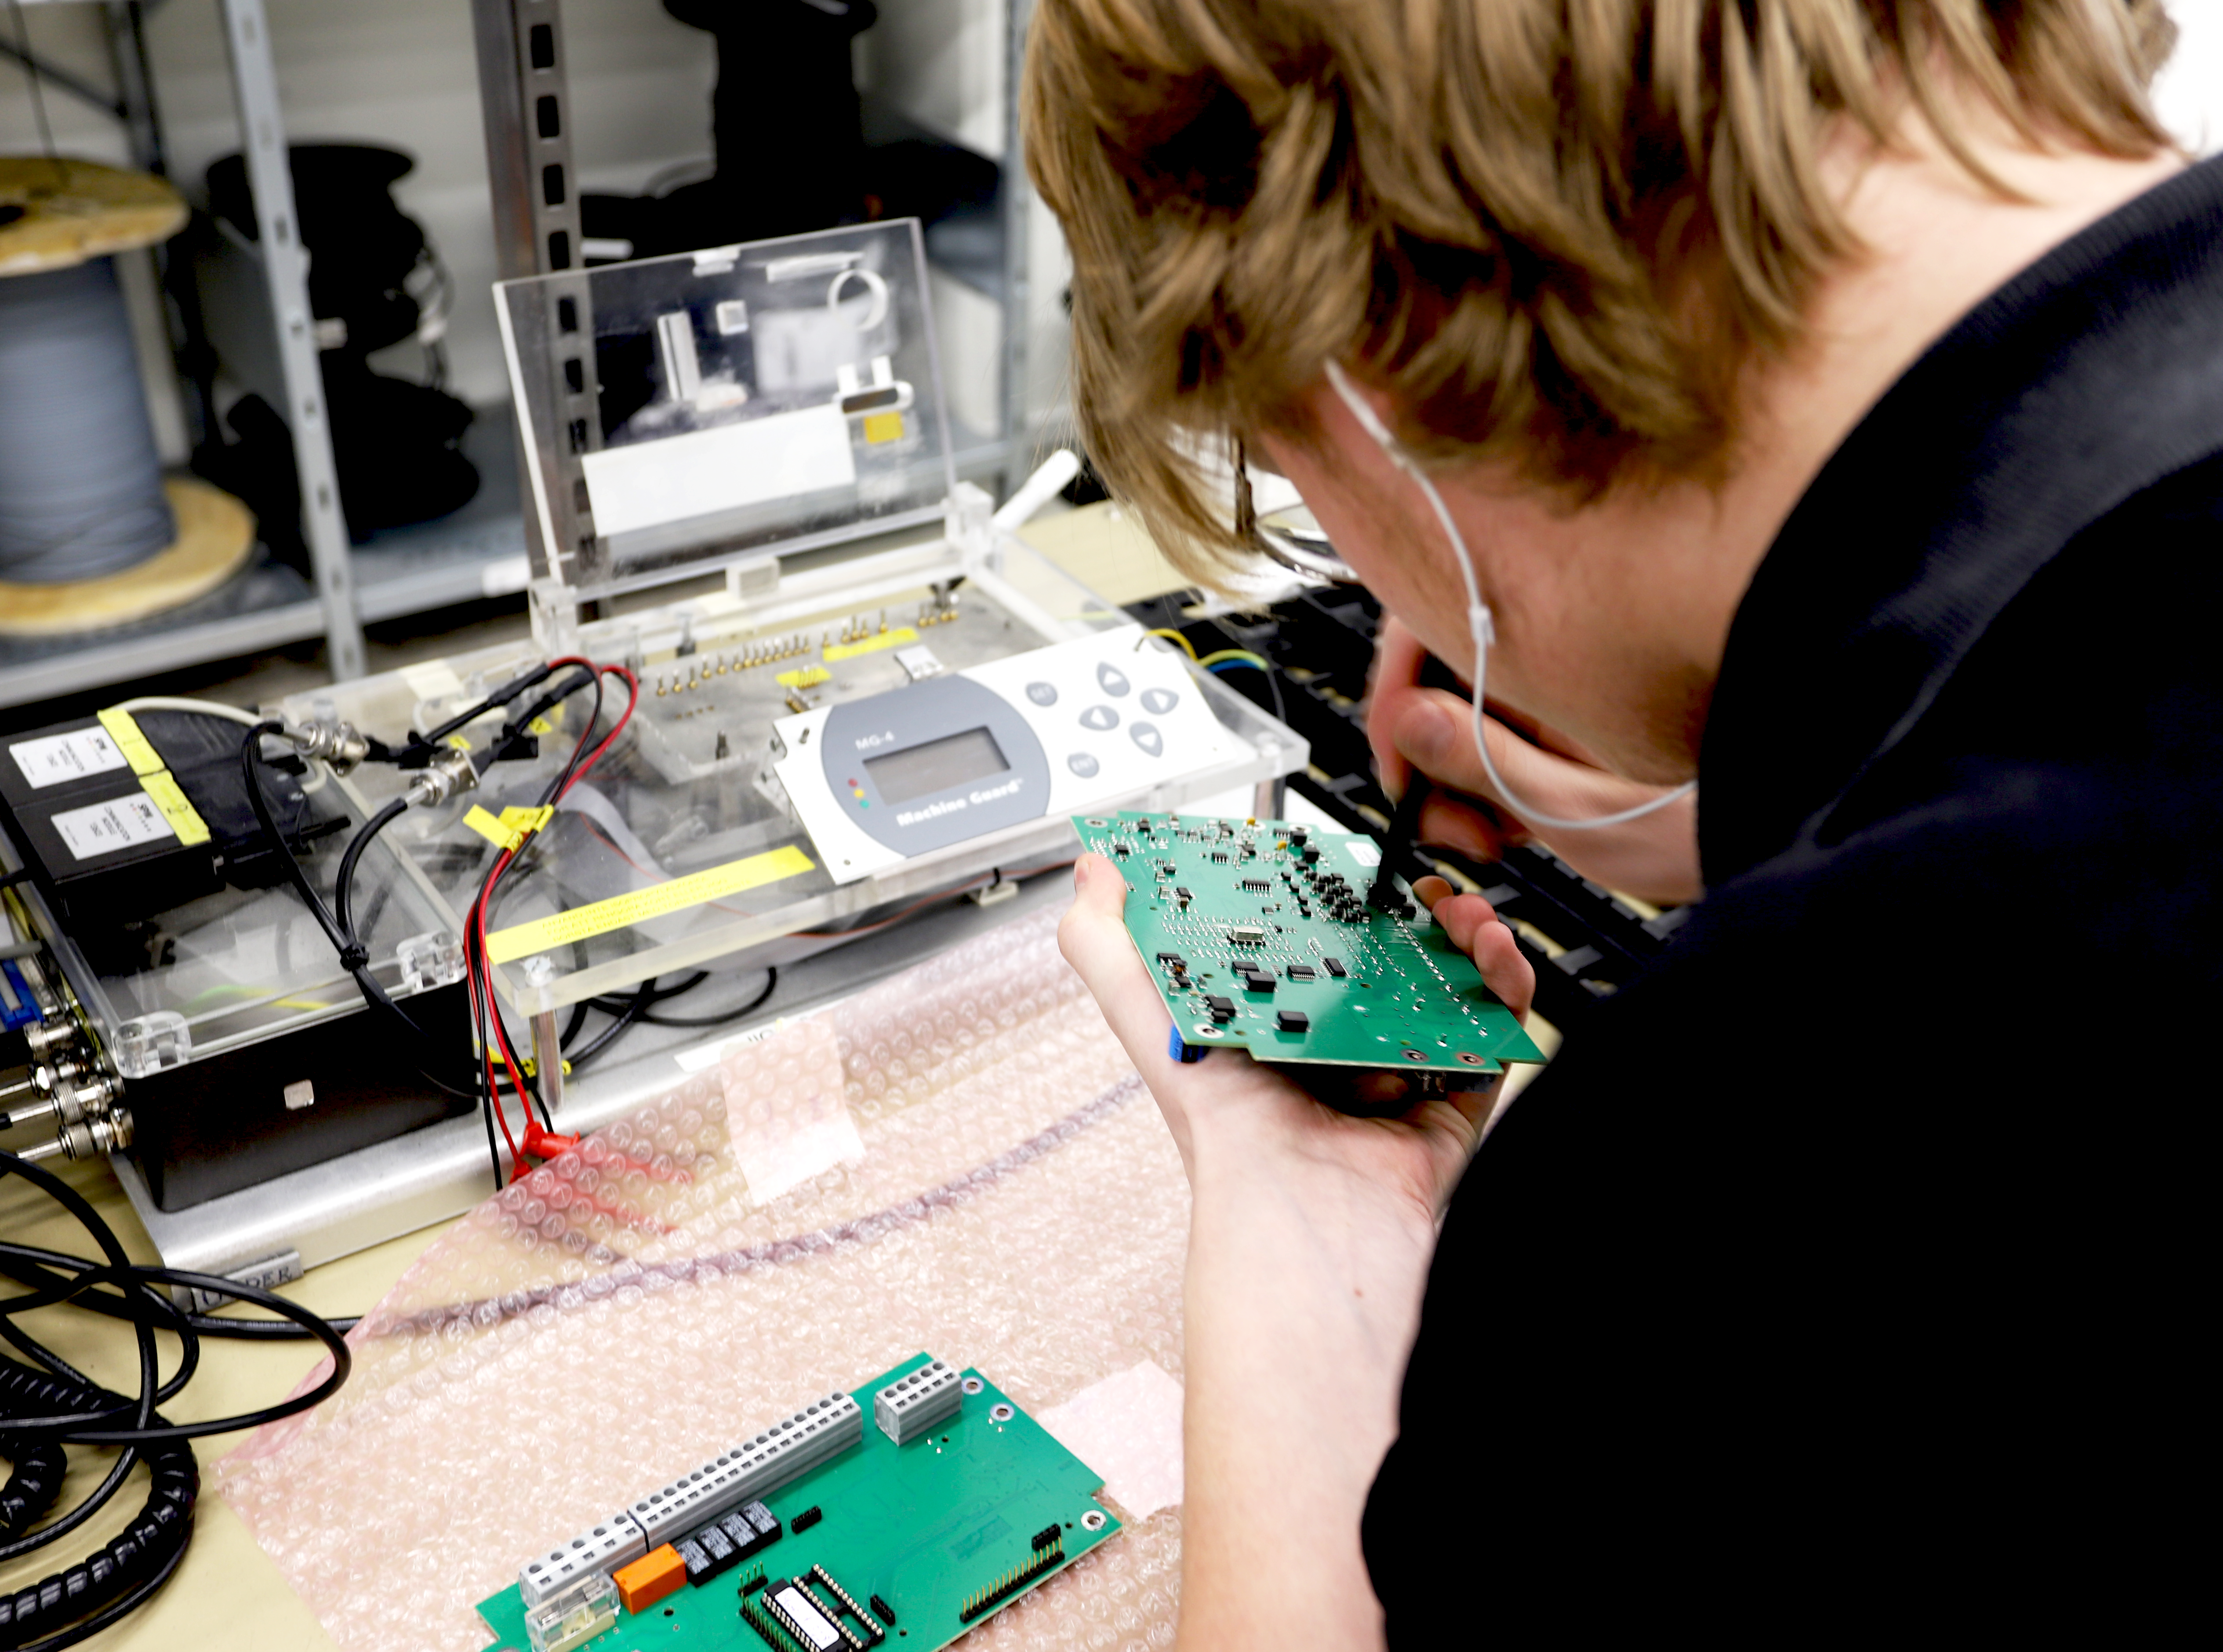 Electronics technician soldering on a circuit board